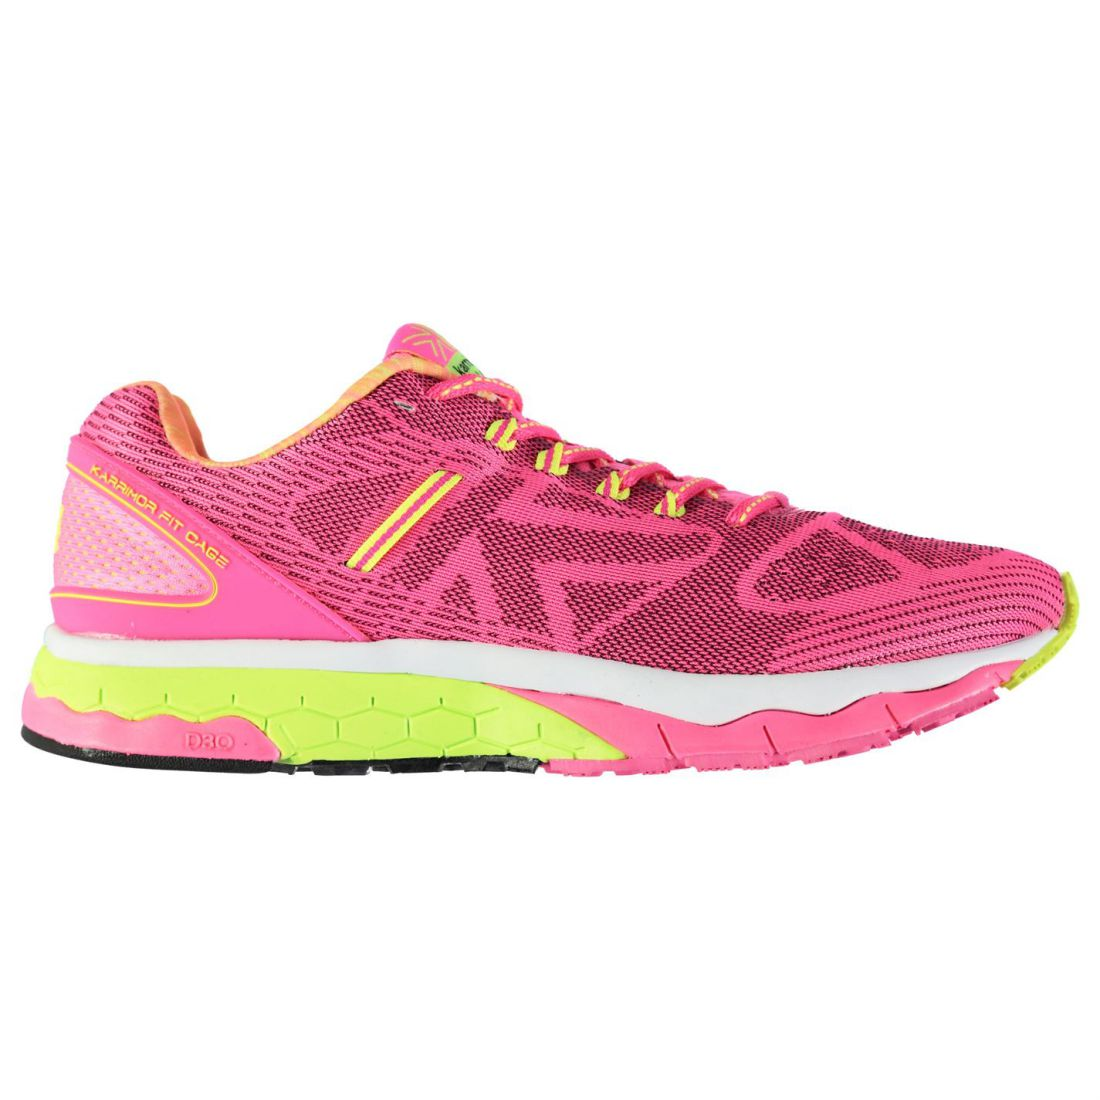 Karrimor Womens D30 Excel 2 Ladies Running Shoes Sports Lace Up ... a6a75c79a